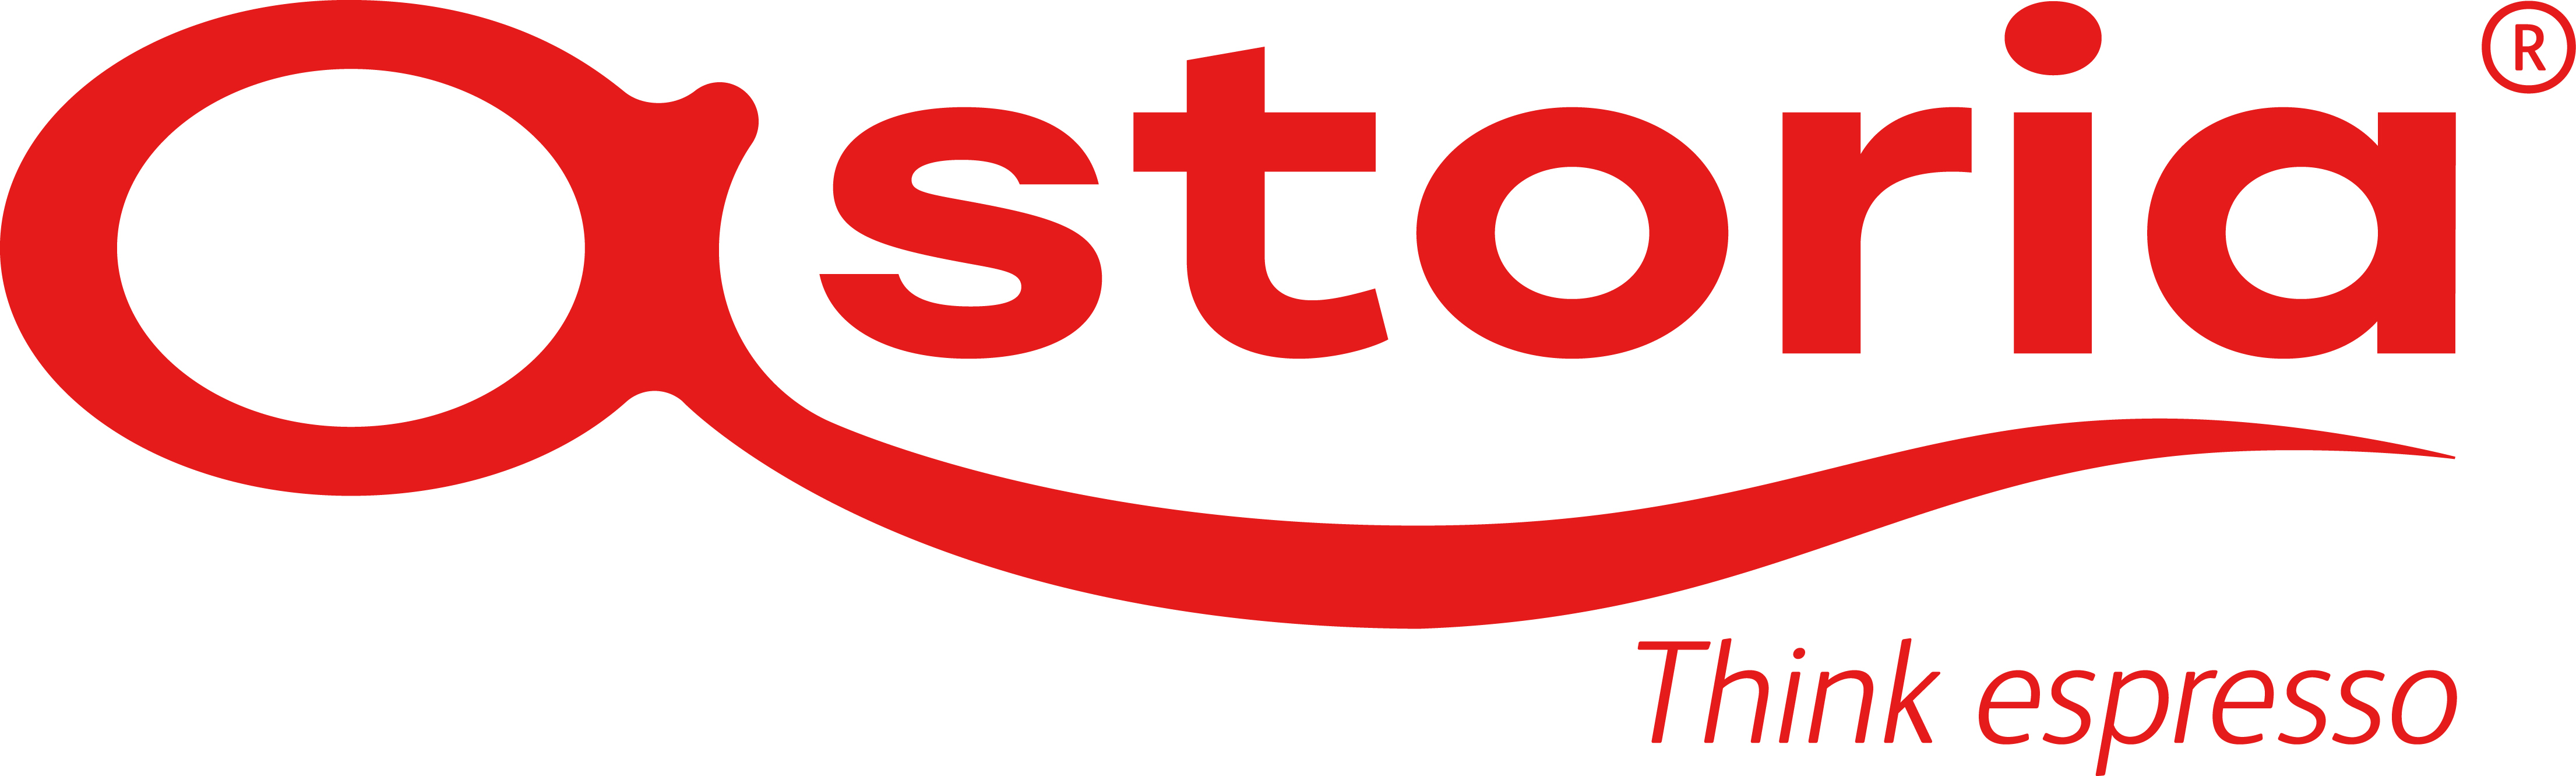 Astoria_Logotype2016